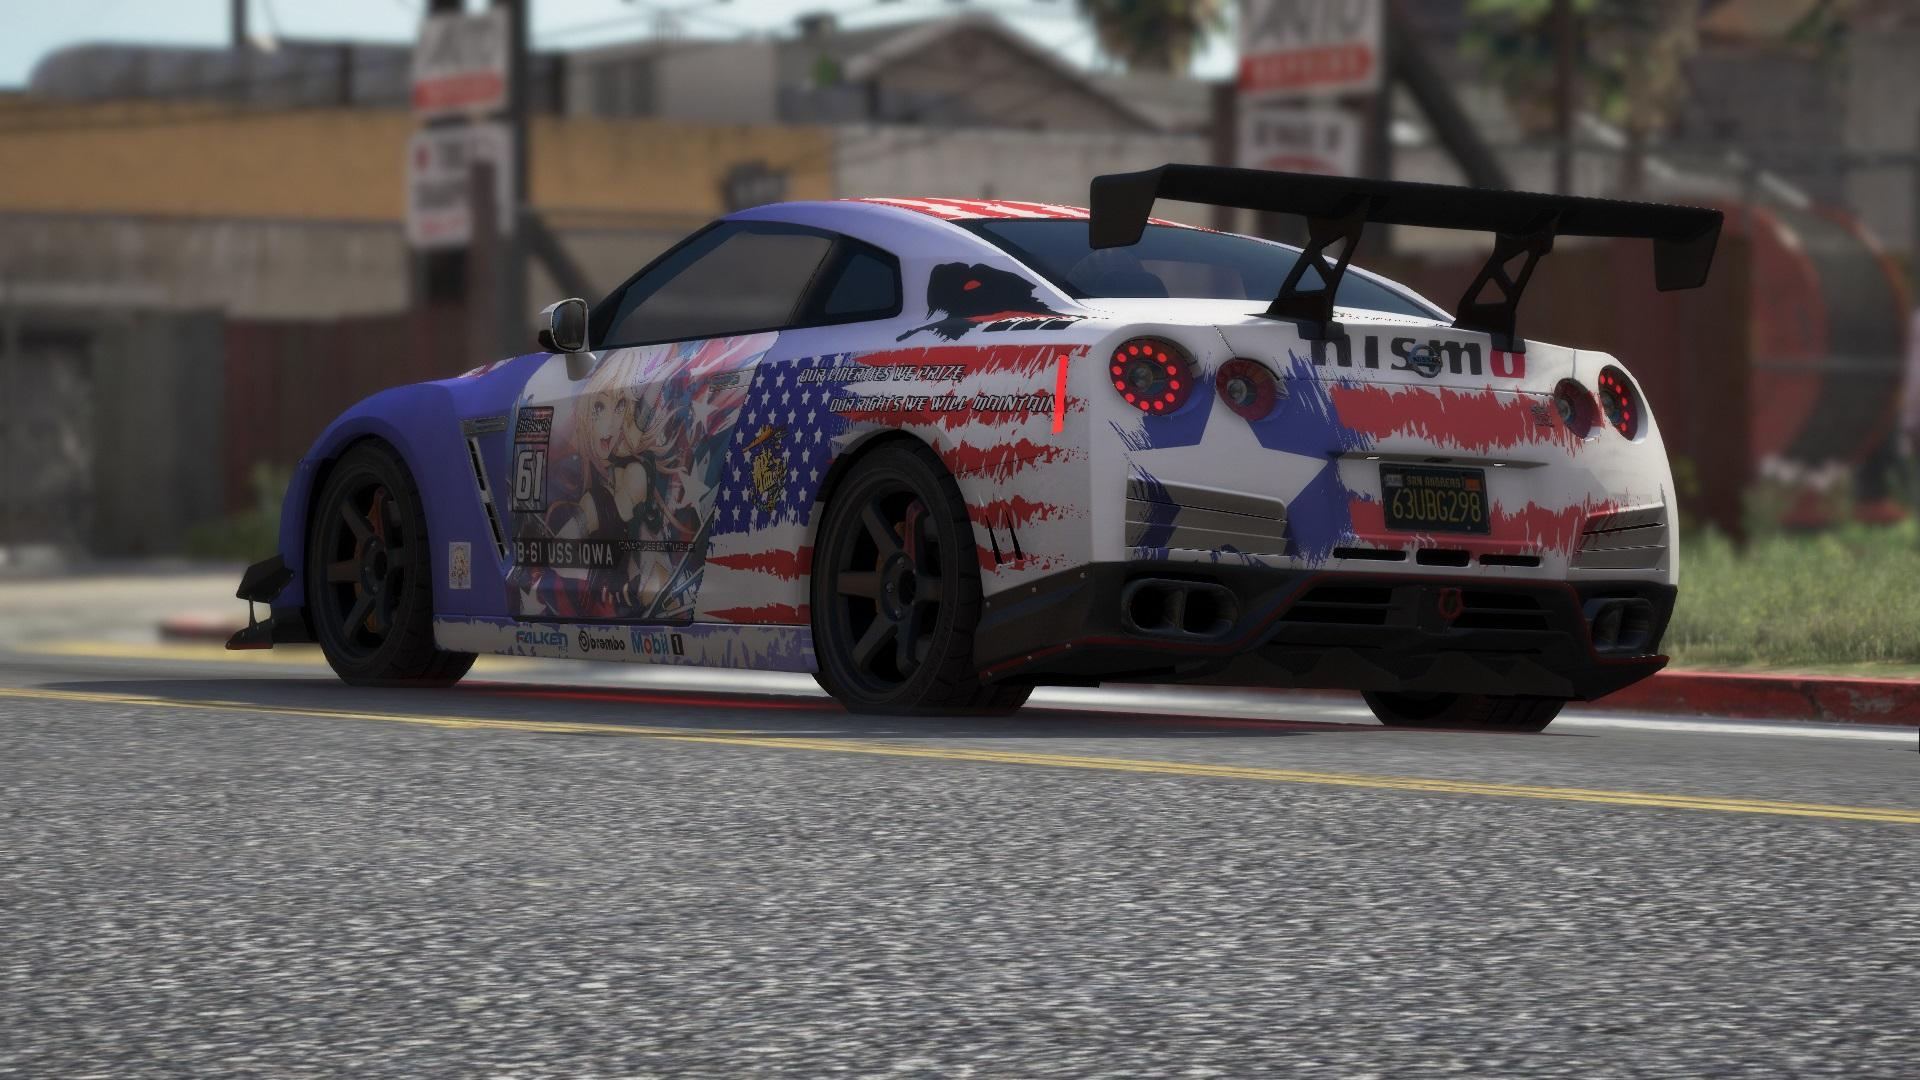 Nissan Gtr R35 Bb 61 Iowa Kantai Collection Livery